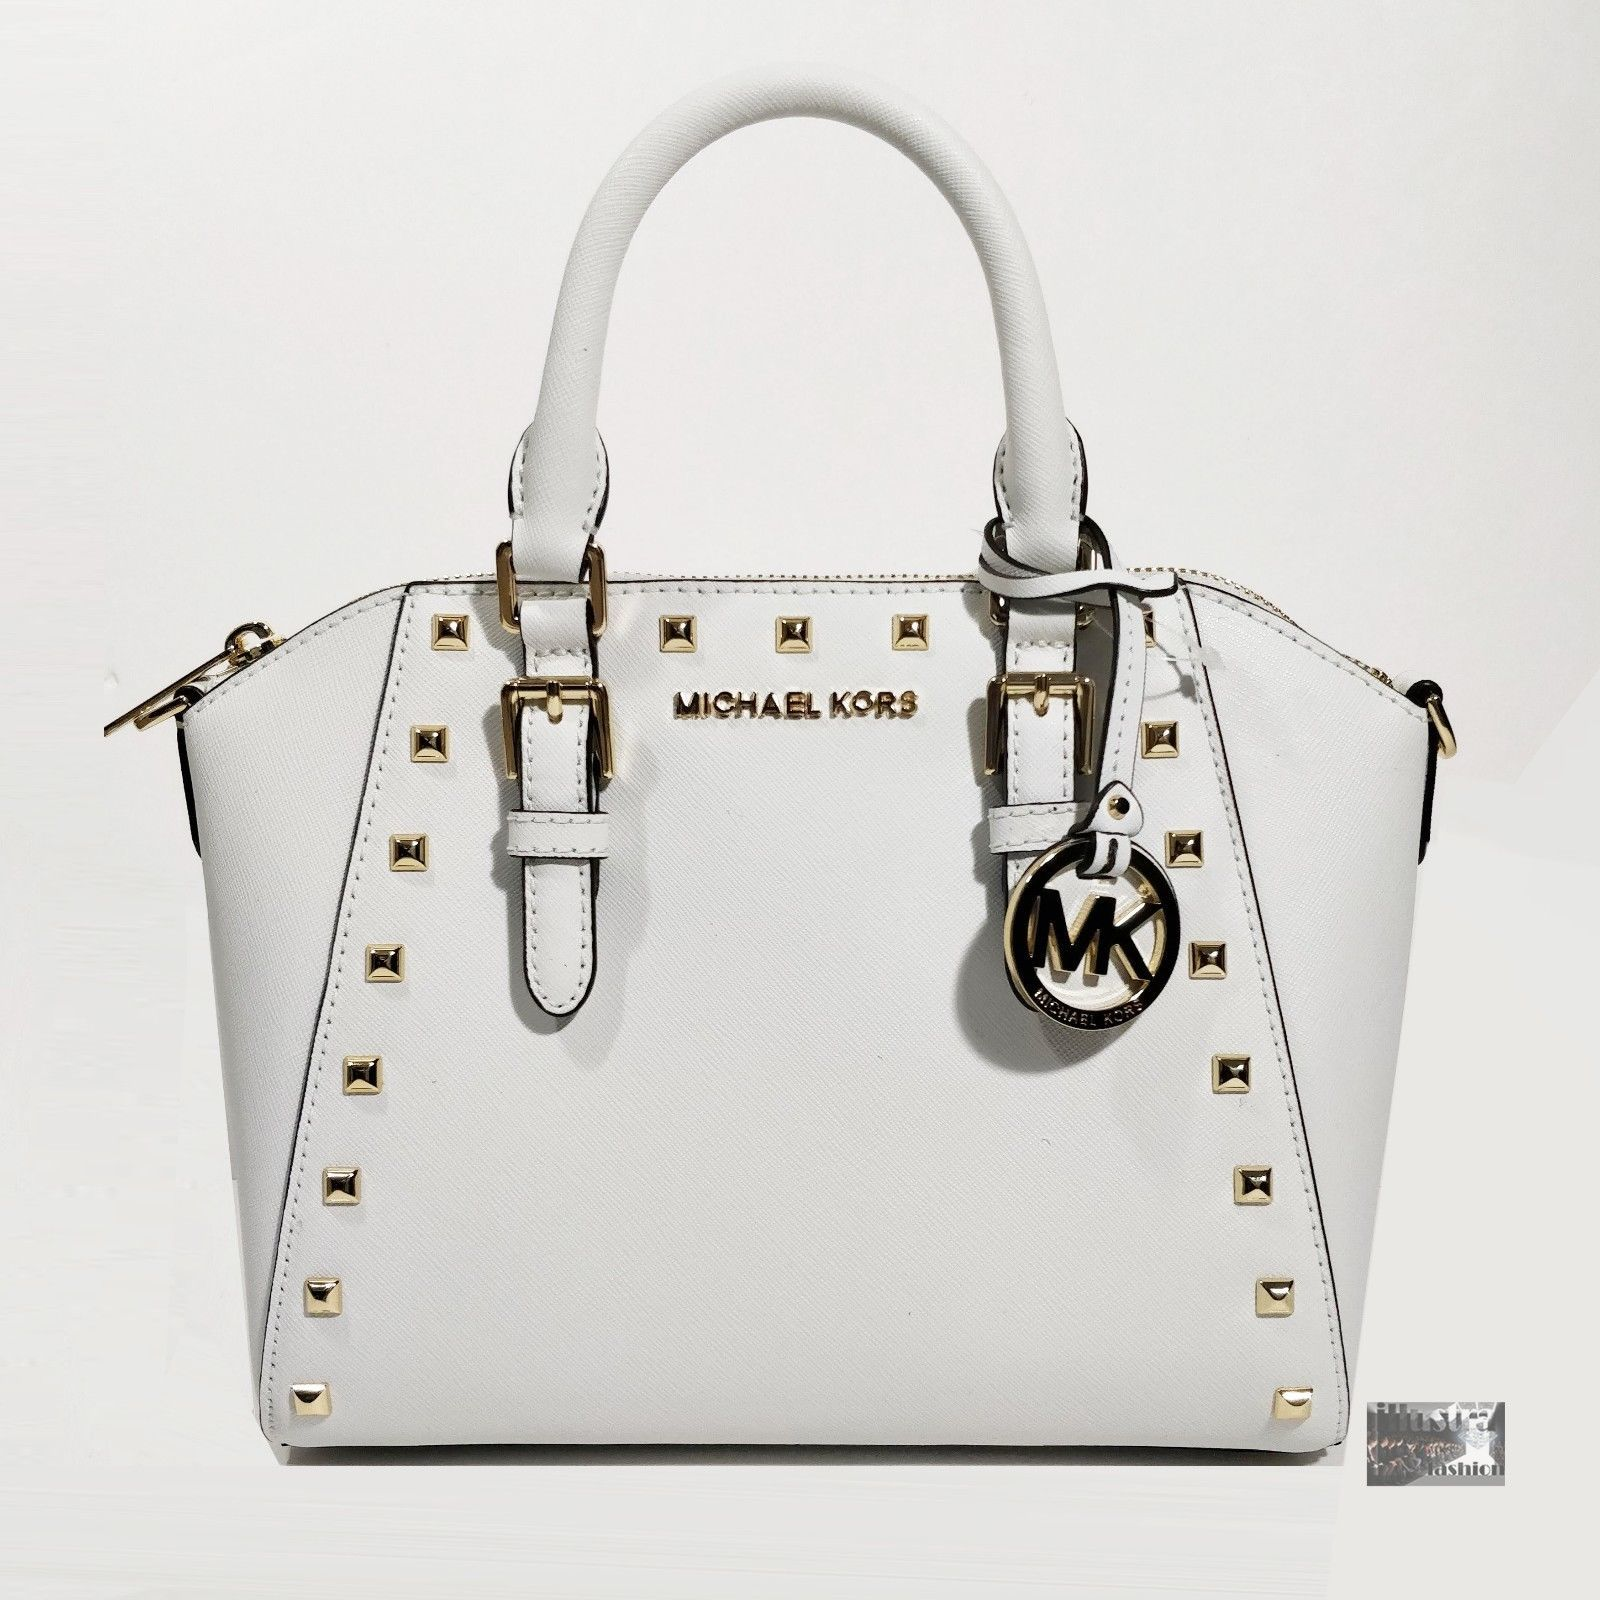 b3b19dffdf52 57. 57. NWT $328 Michael Kors Ciara White Saffiano Leather Studded Satchel  Crossbody Bag · NWT $328 Michael Kors ...